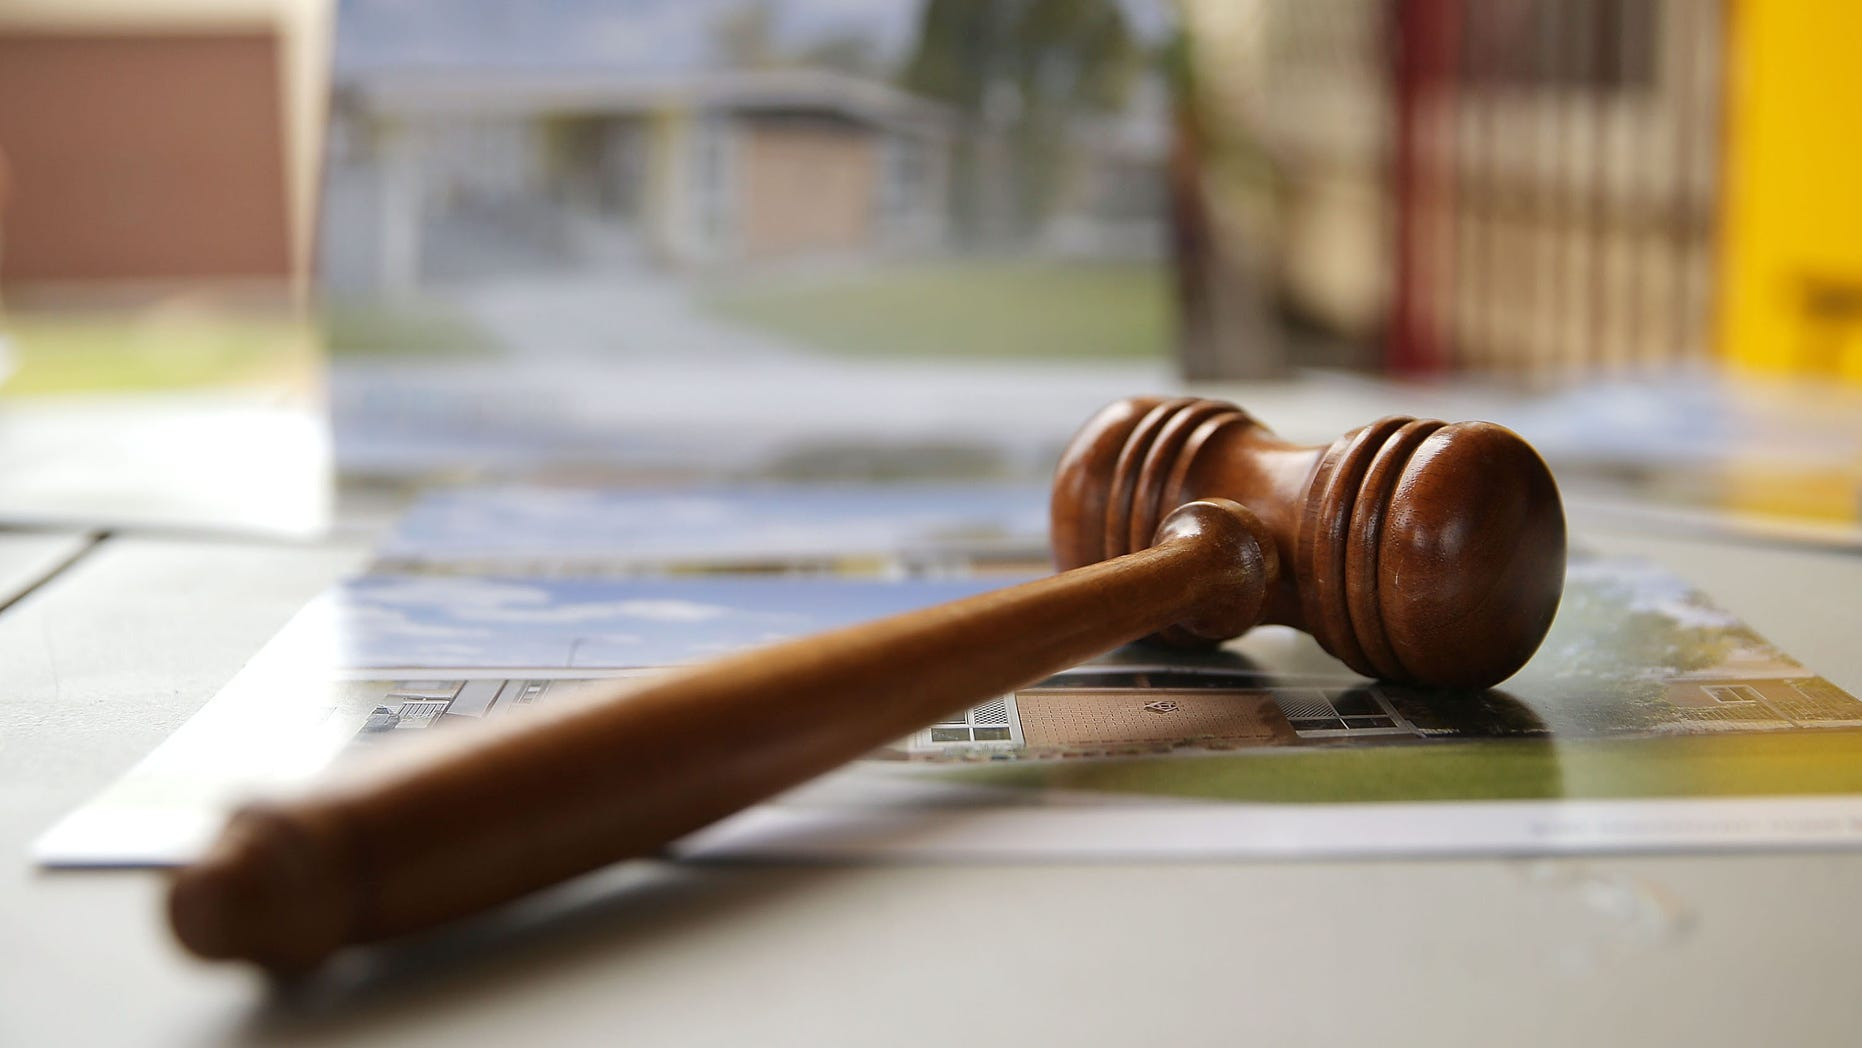 BLACKTOWN, AUSTRALIA - FEBRUARY 14:  An auctioneer's gavel is seen prior to the home auction for a four-bedroom house at 230 Blacktown Road on February 14, 2015 in Blacktown, Australia. The Blacktown home sold for AUD$565,000 at auction today, smashing the reserve set at AUD$1. The Sydney home auction clearance rate is expected to remain high following the Reserve Bank's interest rate cut to 2.25 per cent last week.  (Photo by Mark Metcalfe/Getty Images)